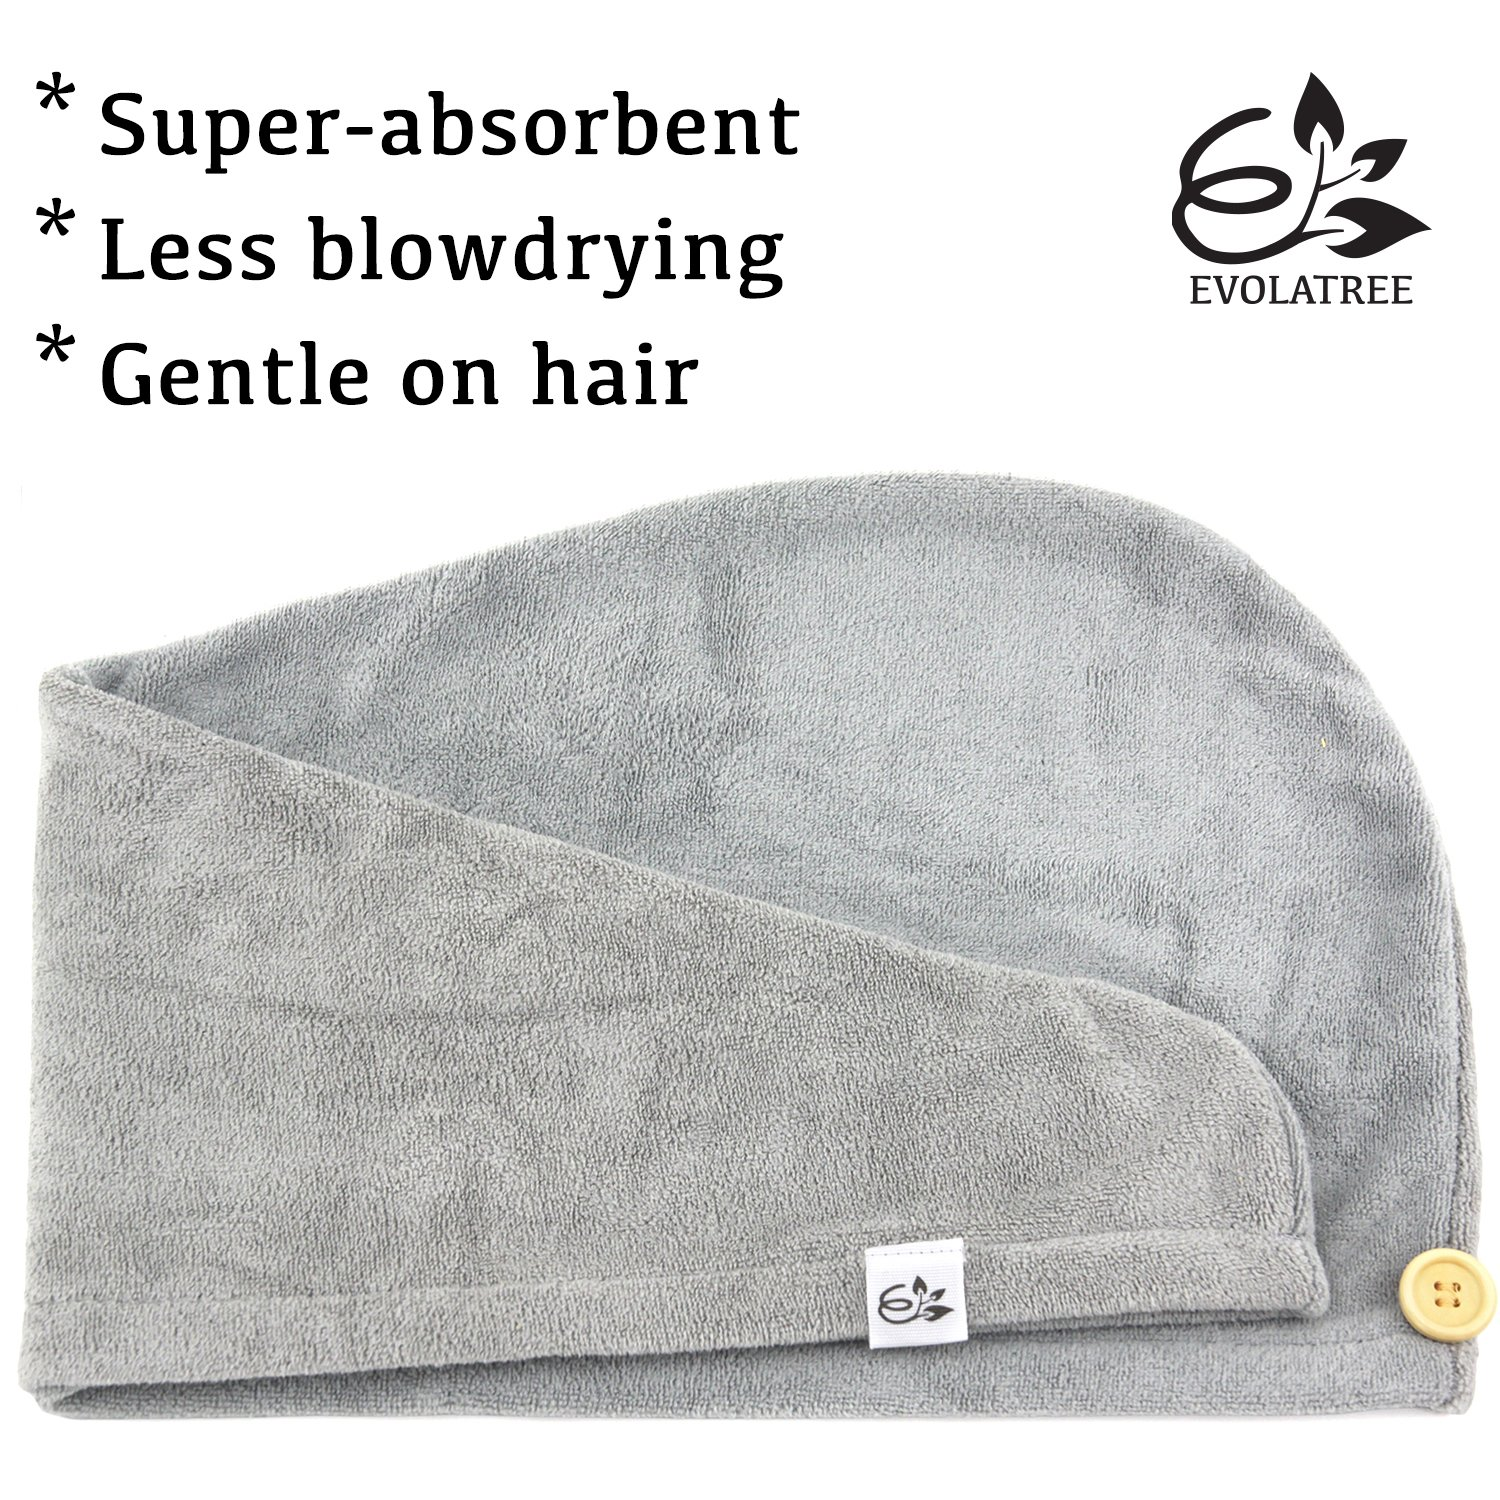 Evolatree Microfiber Hair Towel Wrap - Quick Magic Hair Dry Hat - Anti Frizz Products For Curly Hair Drying Towels - Neutral Gray by Evolatree (Image #6)